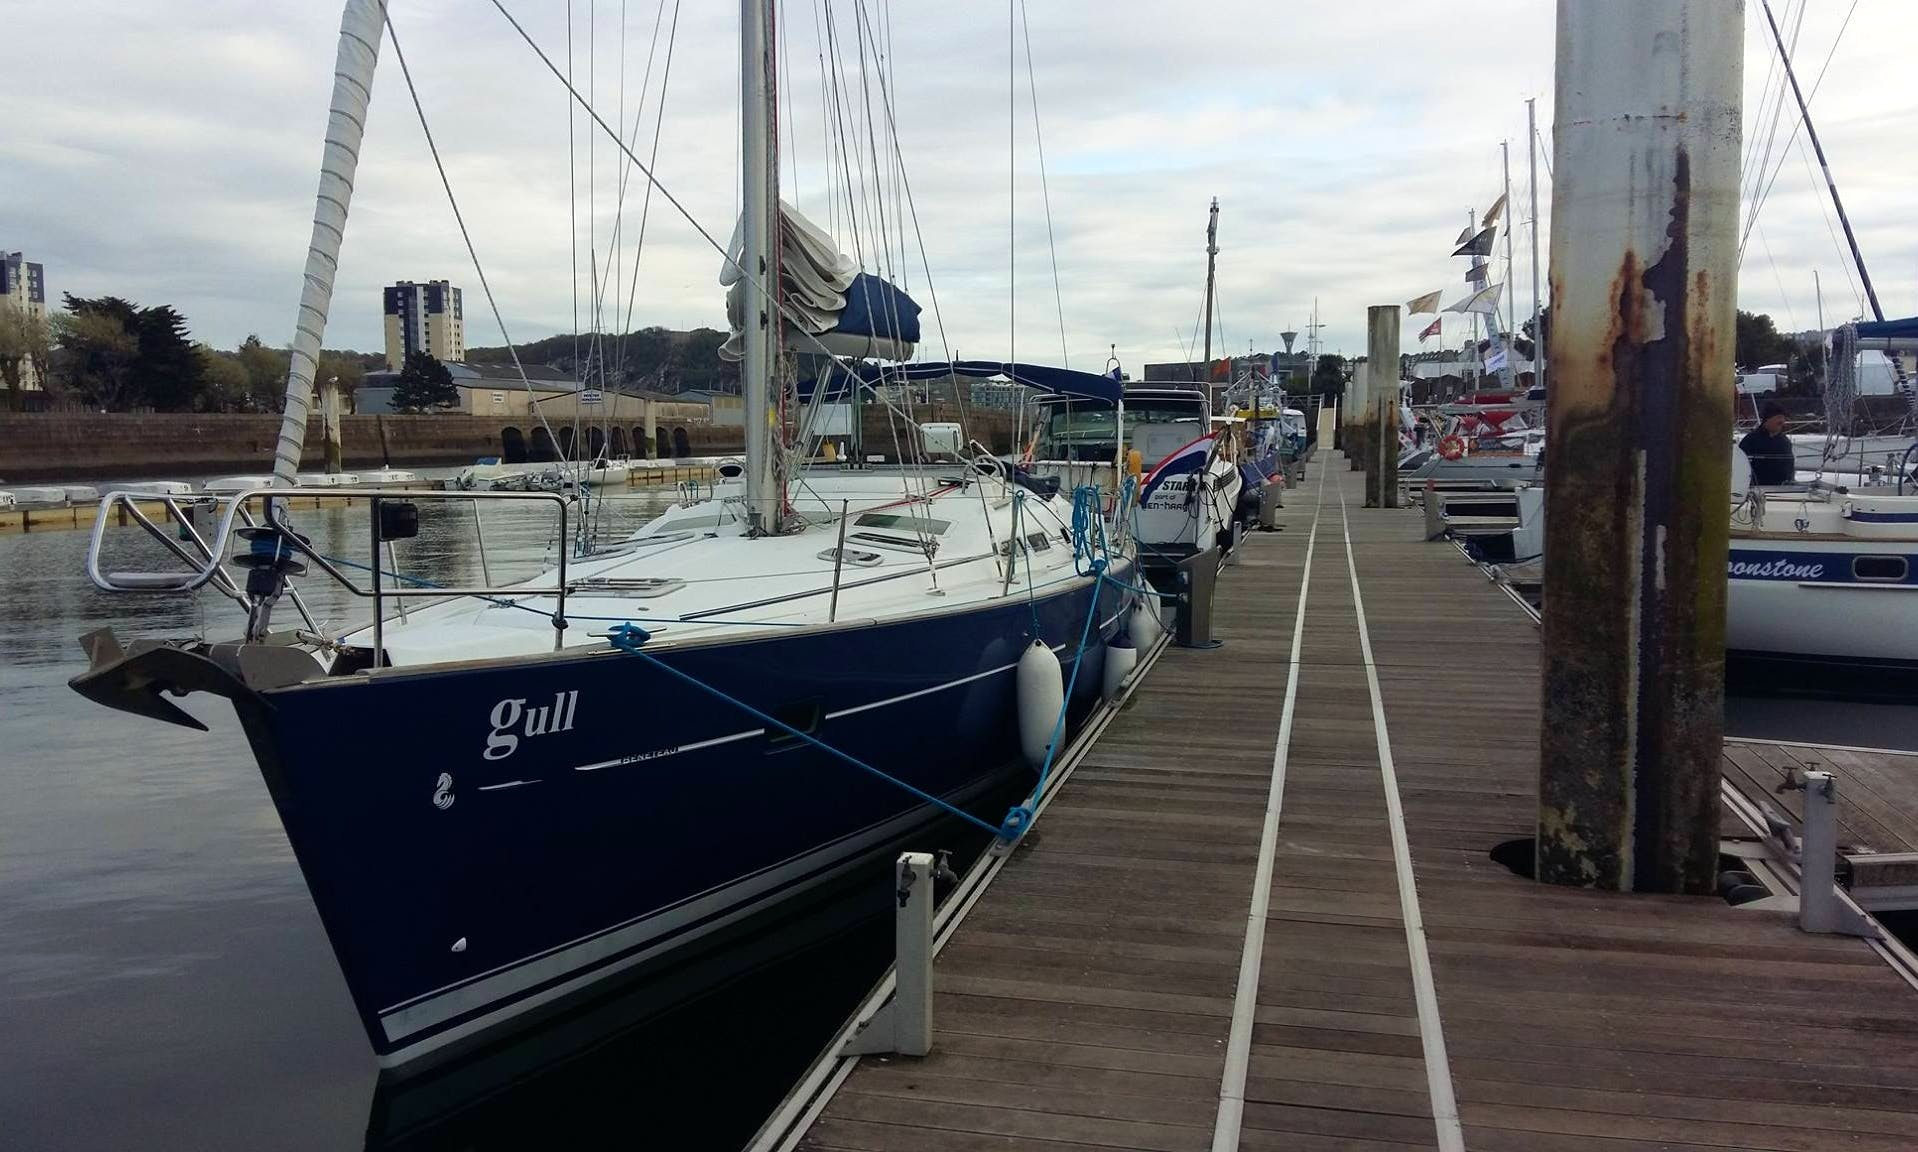 """Oceanis 423 """"Gull"""" Sailboat for 10 People in Southampton"""